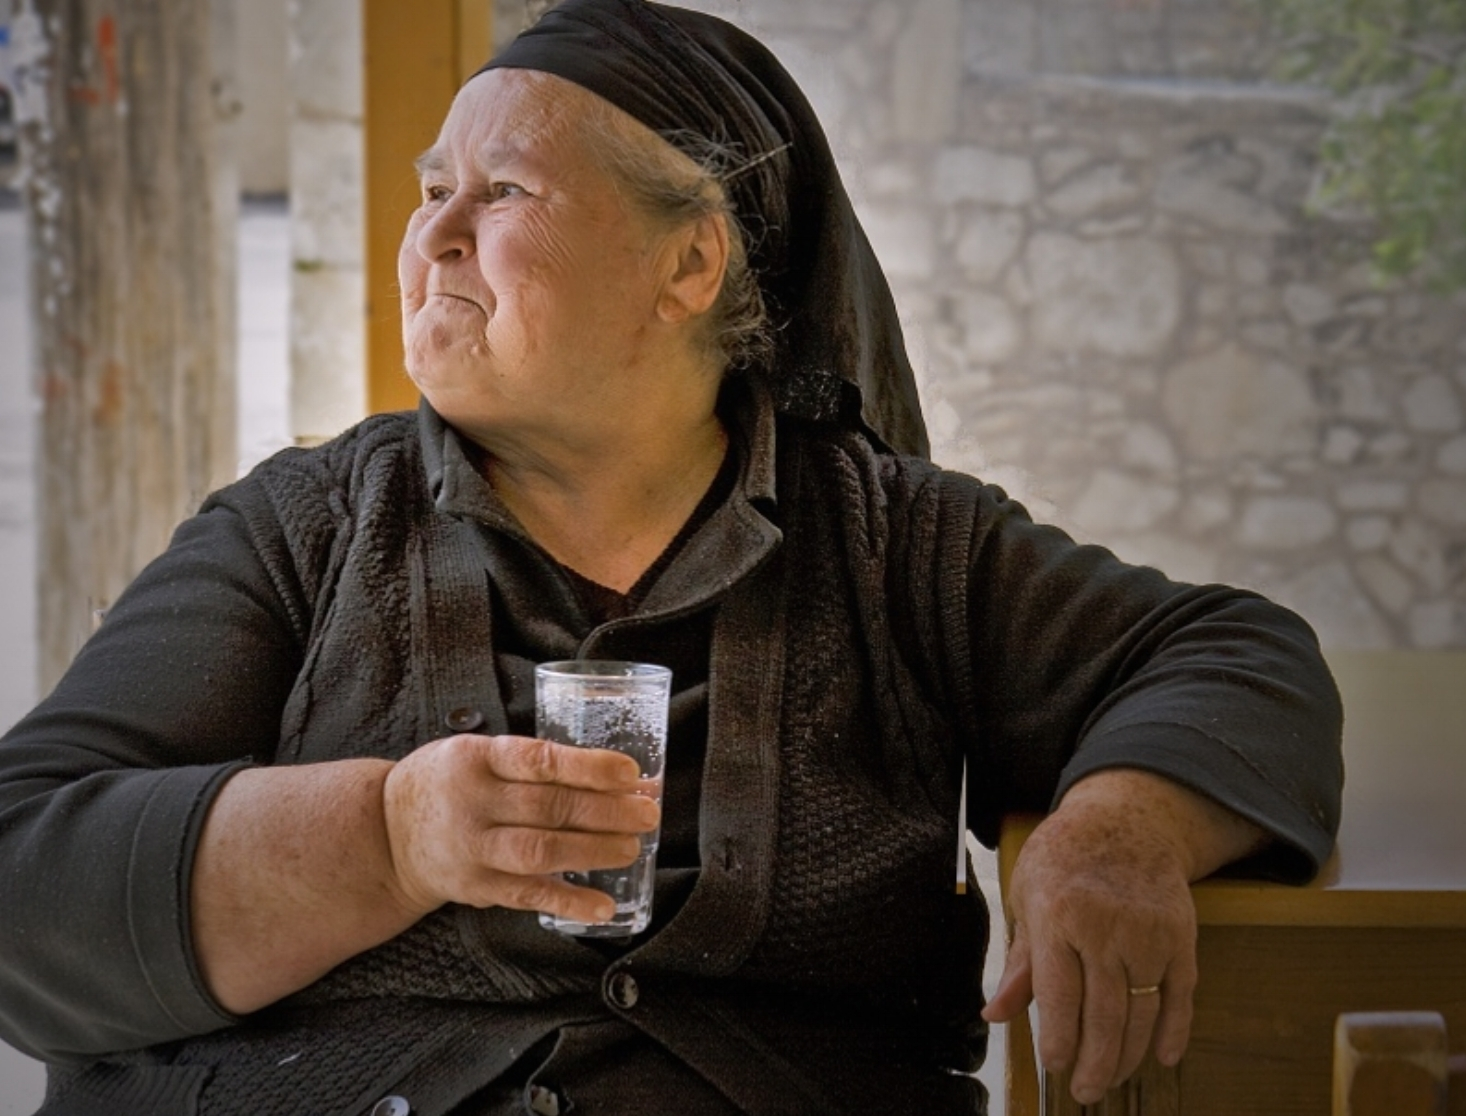 L2-1 Woman with glass.jpg